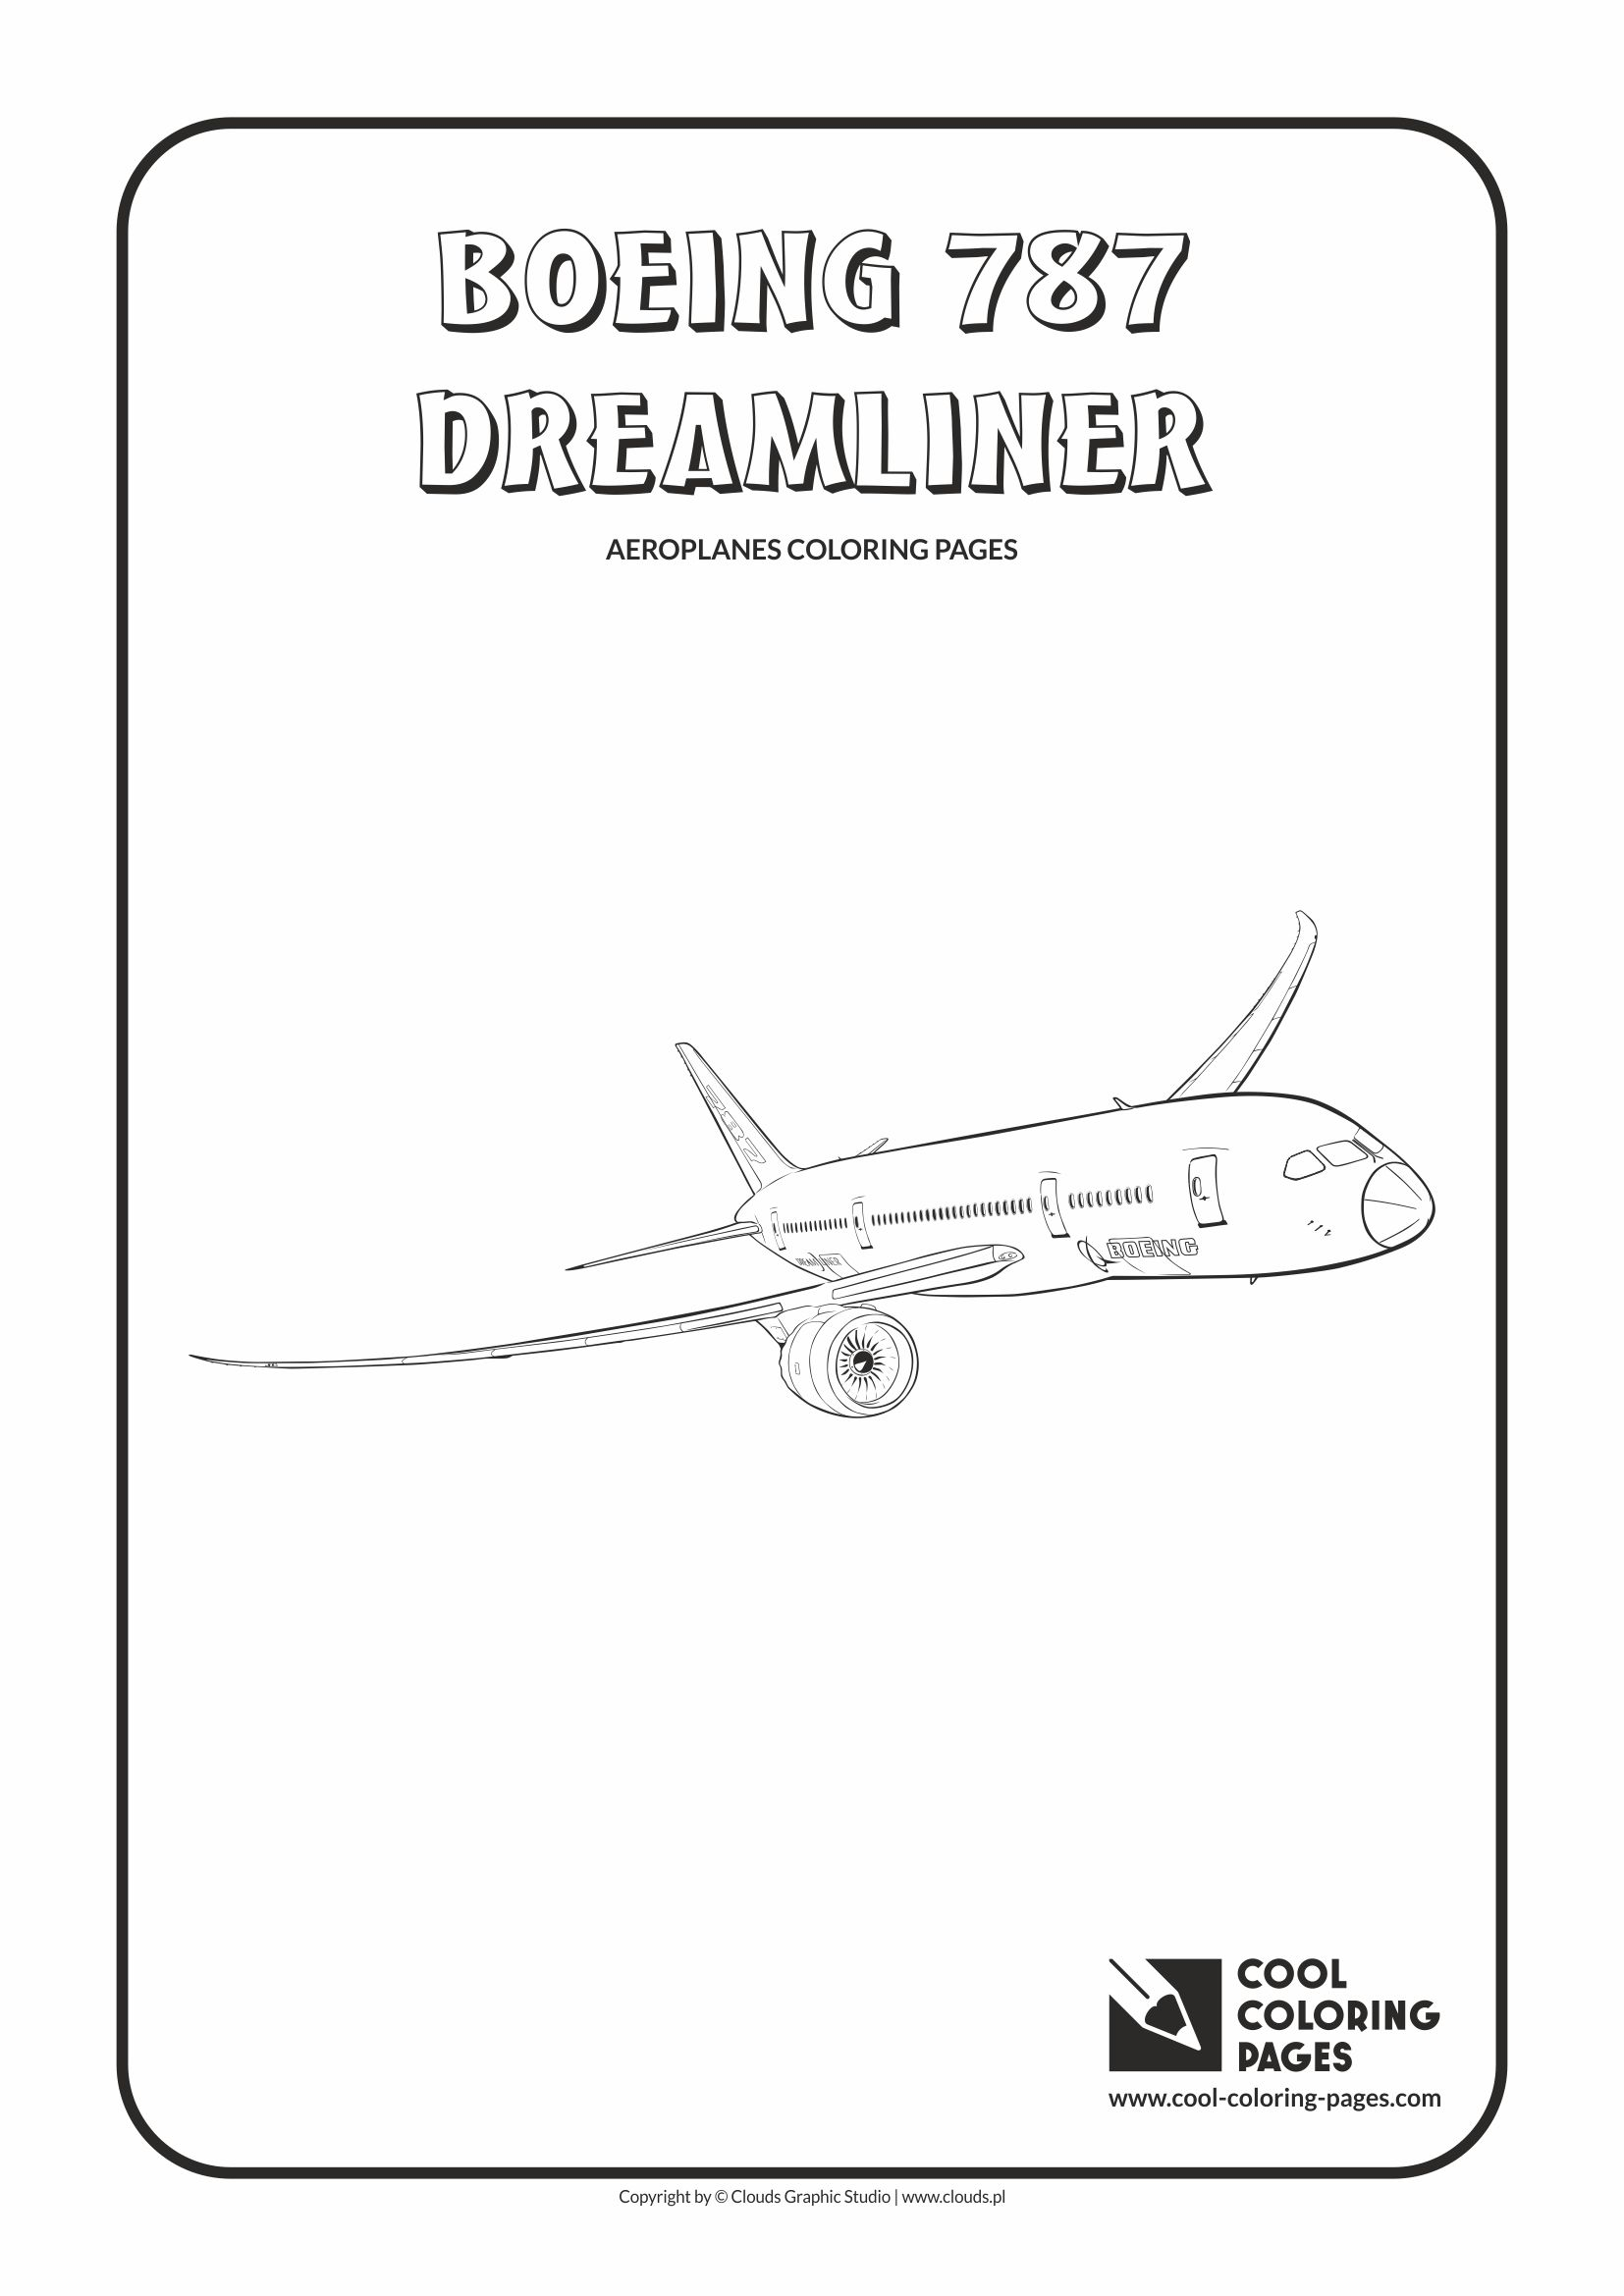 Cool Coloring Pages - Vehicles / Boeing 787 Dreamliner / Coloring page with Boeing 787 Dreamliner